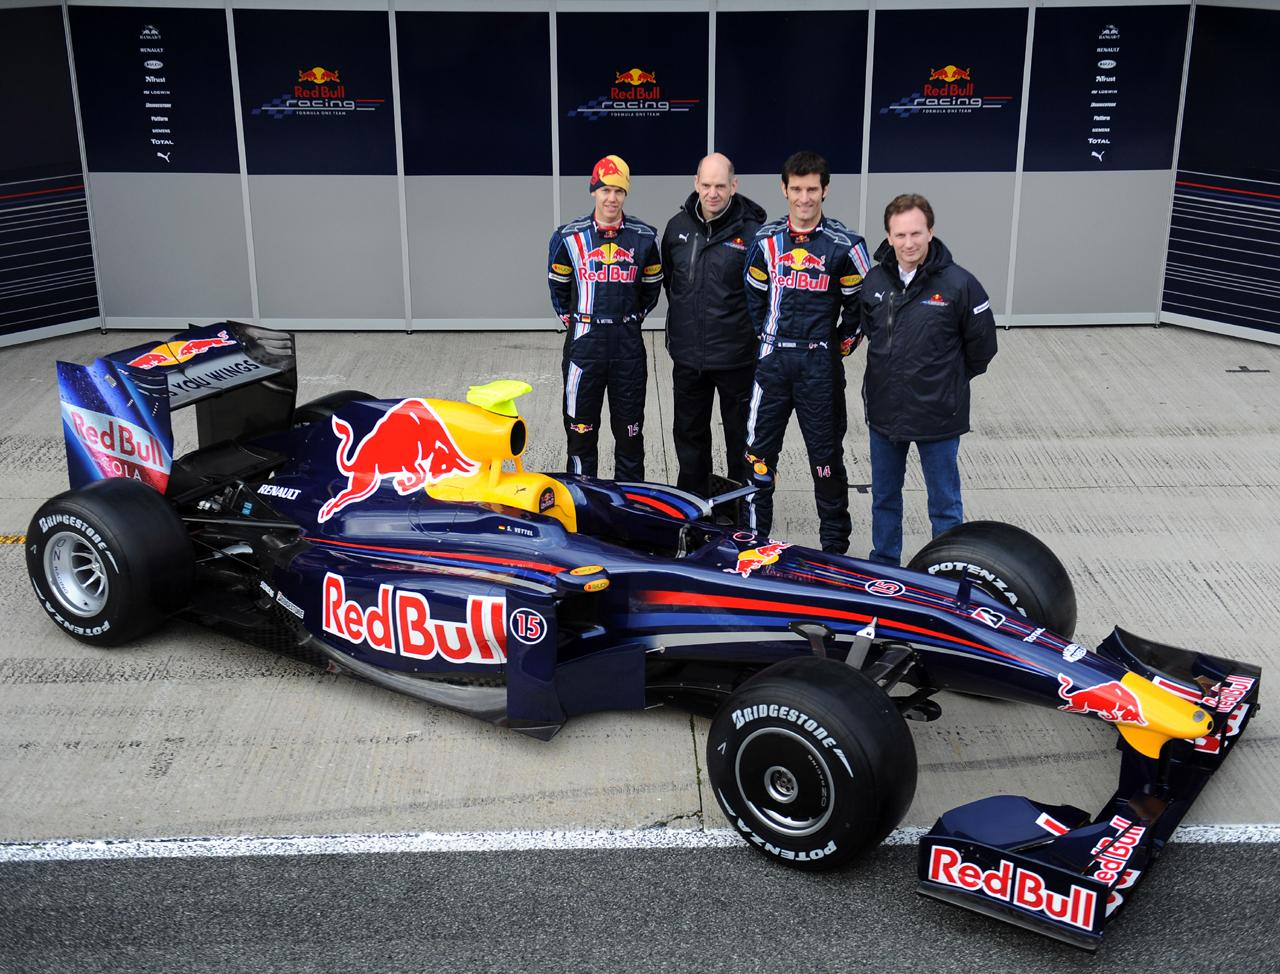 2009 Red Bull Rb5 Renault Image Https Www Conceptcarz